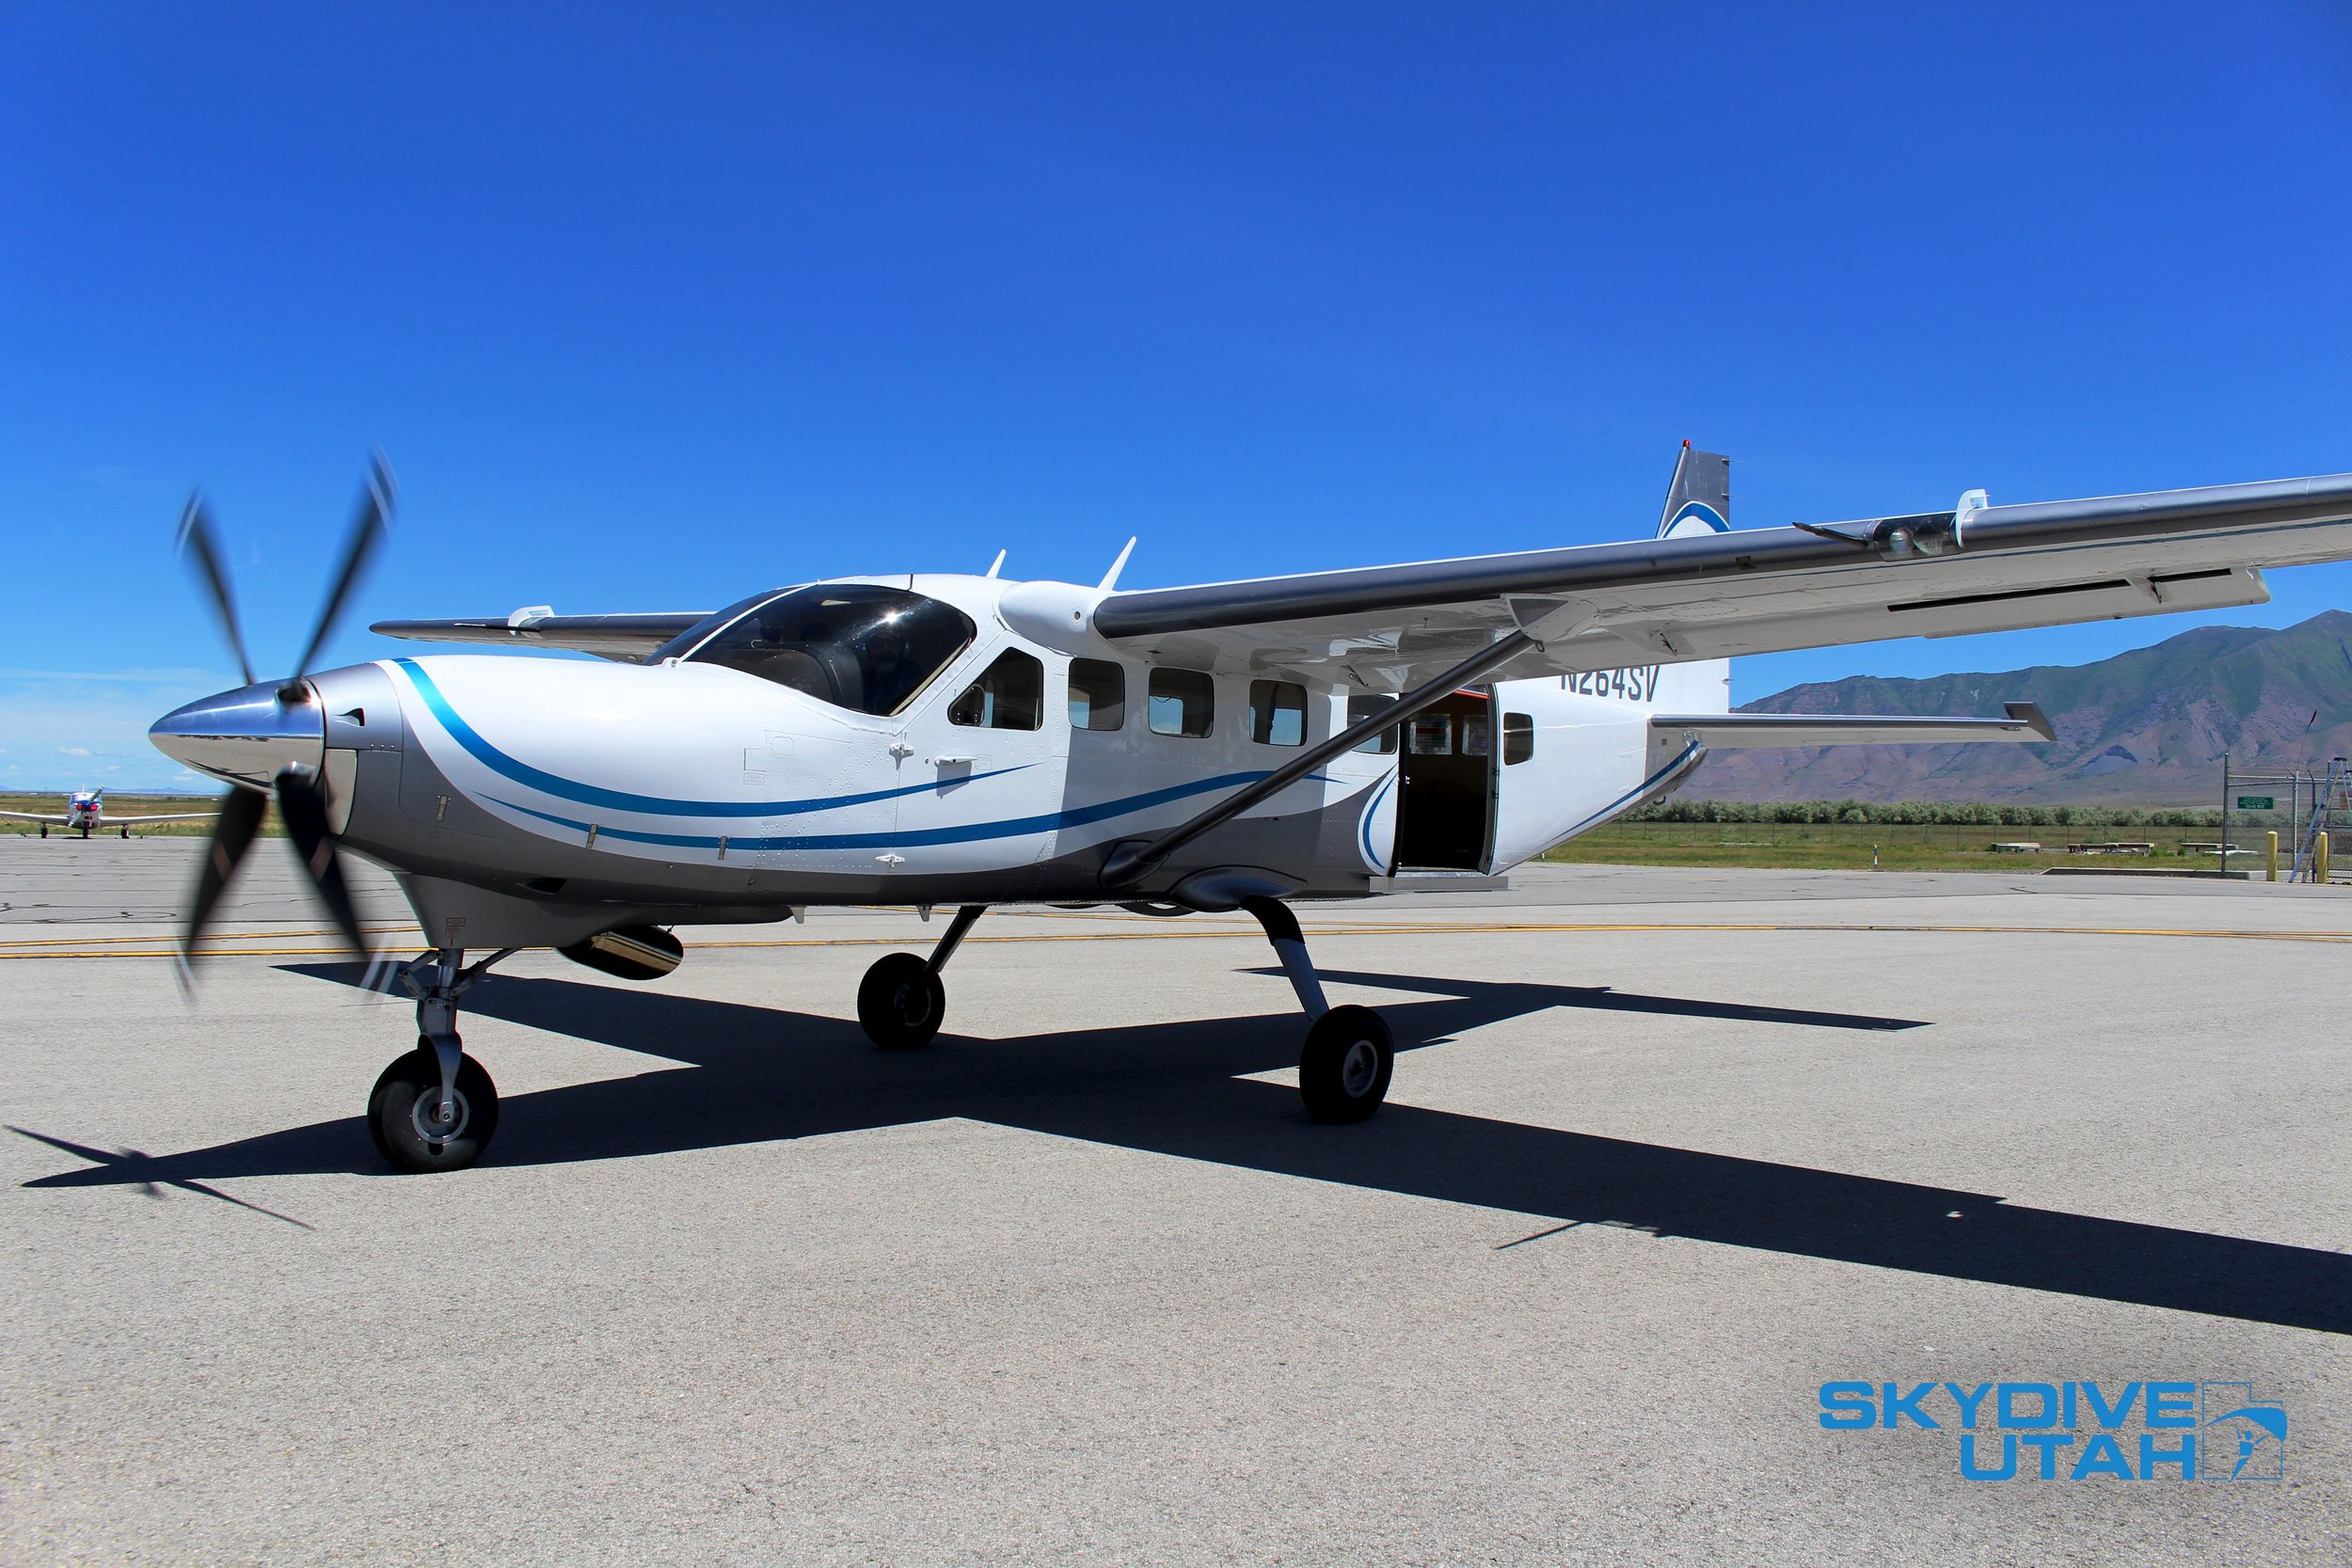 Our Texas Turbines Grand Caravan will take you to 13,000ft above the ground in 13 minutes!